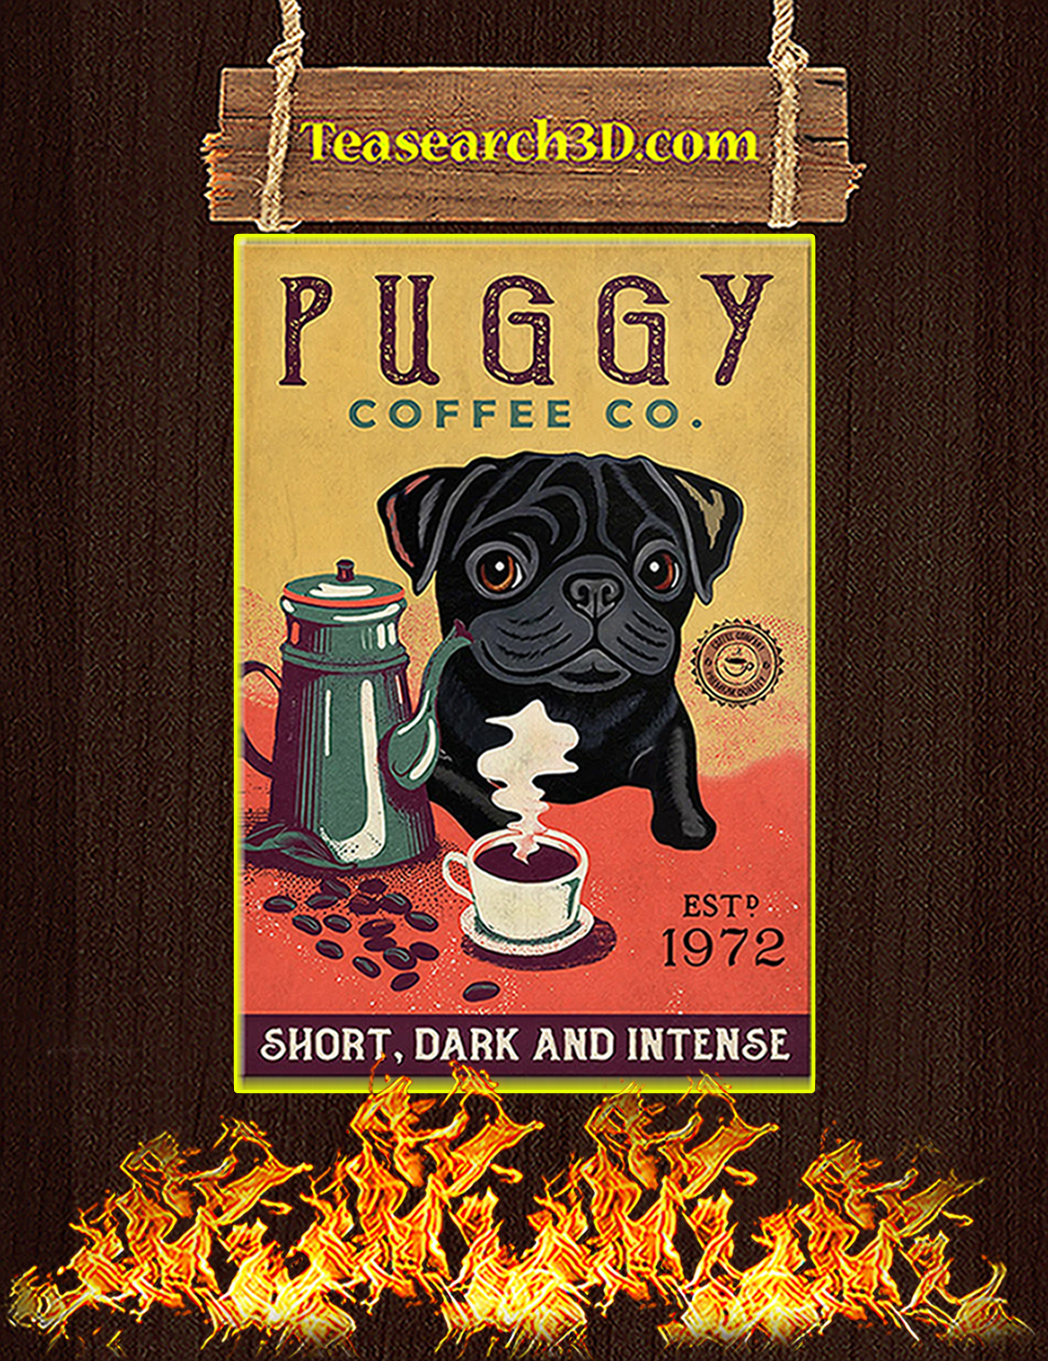 Puggy coffee co short dark and intense poster A1